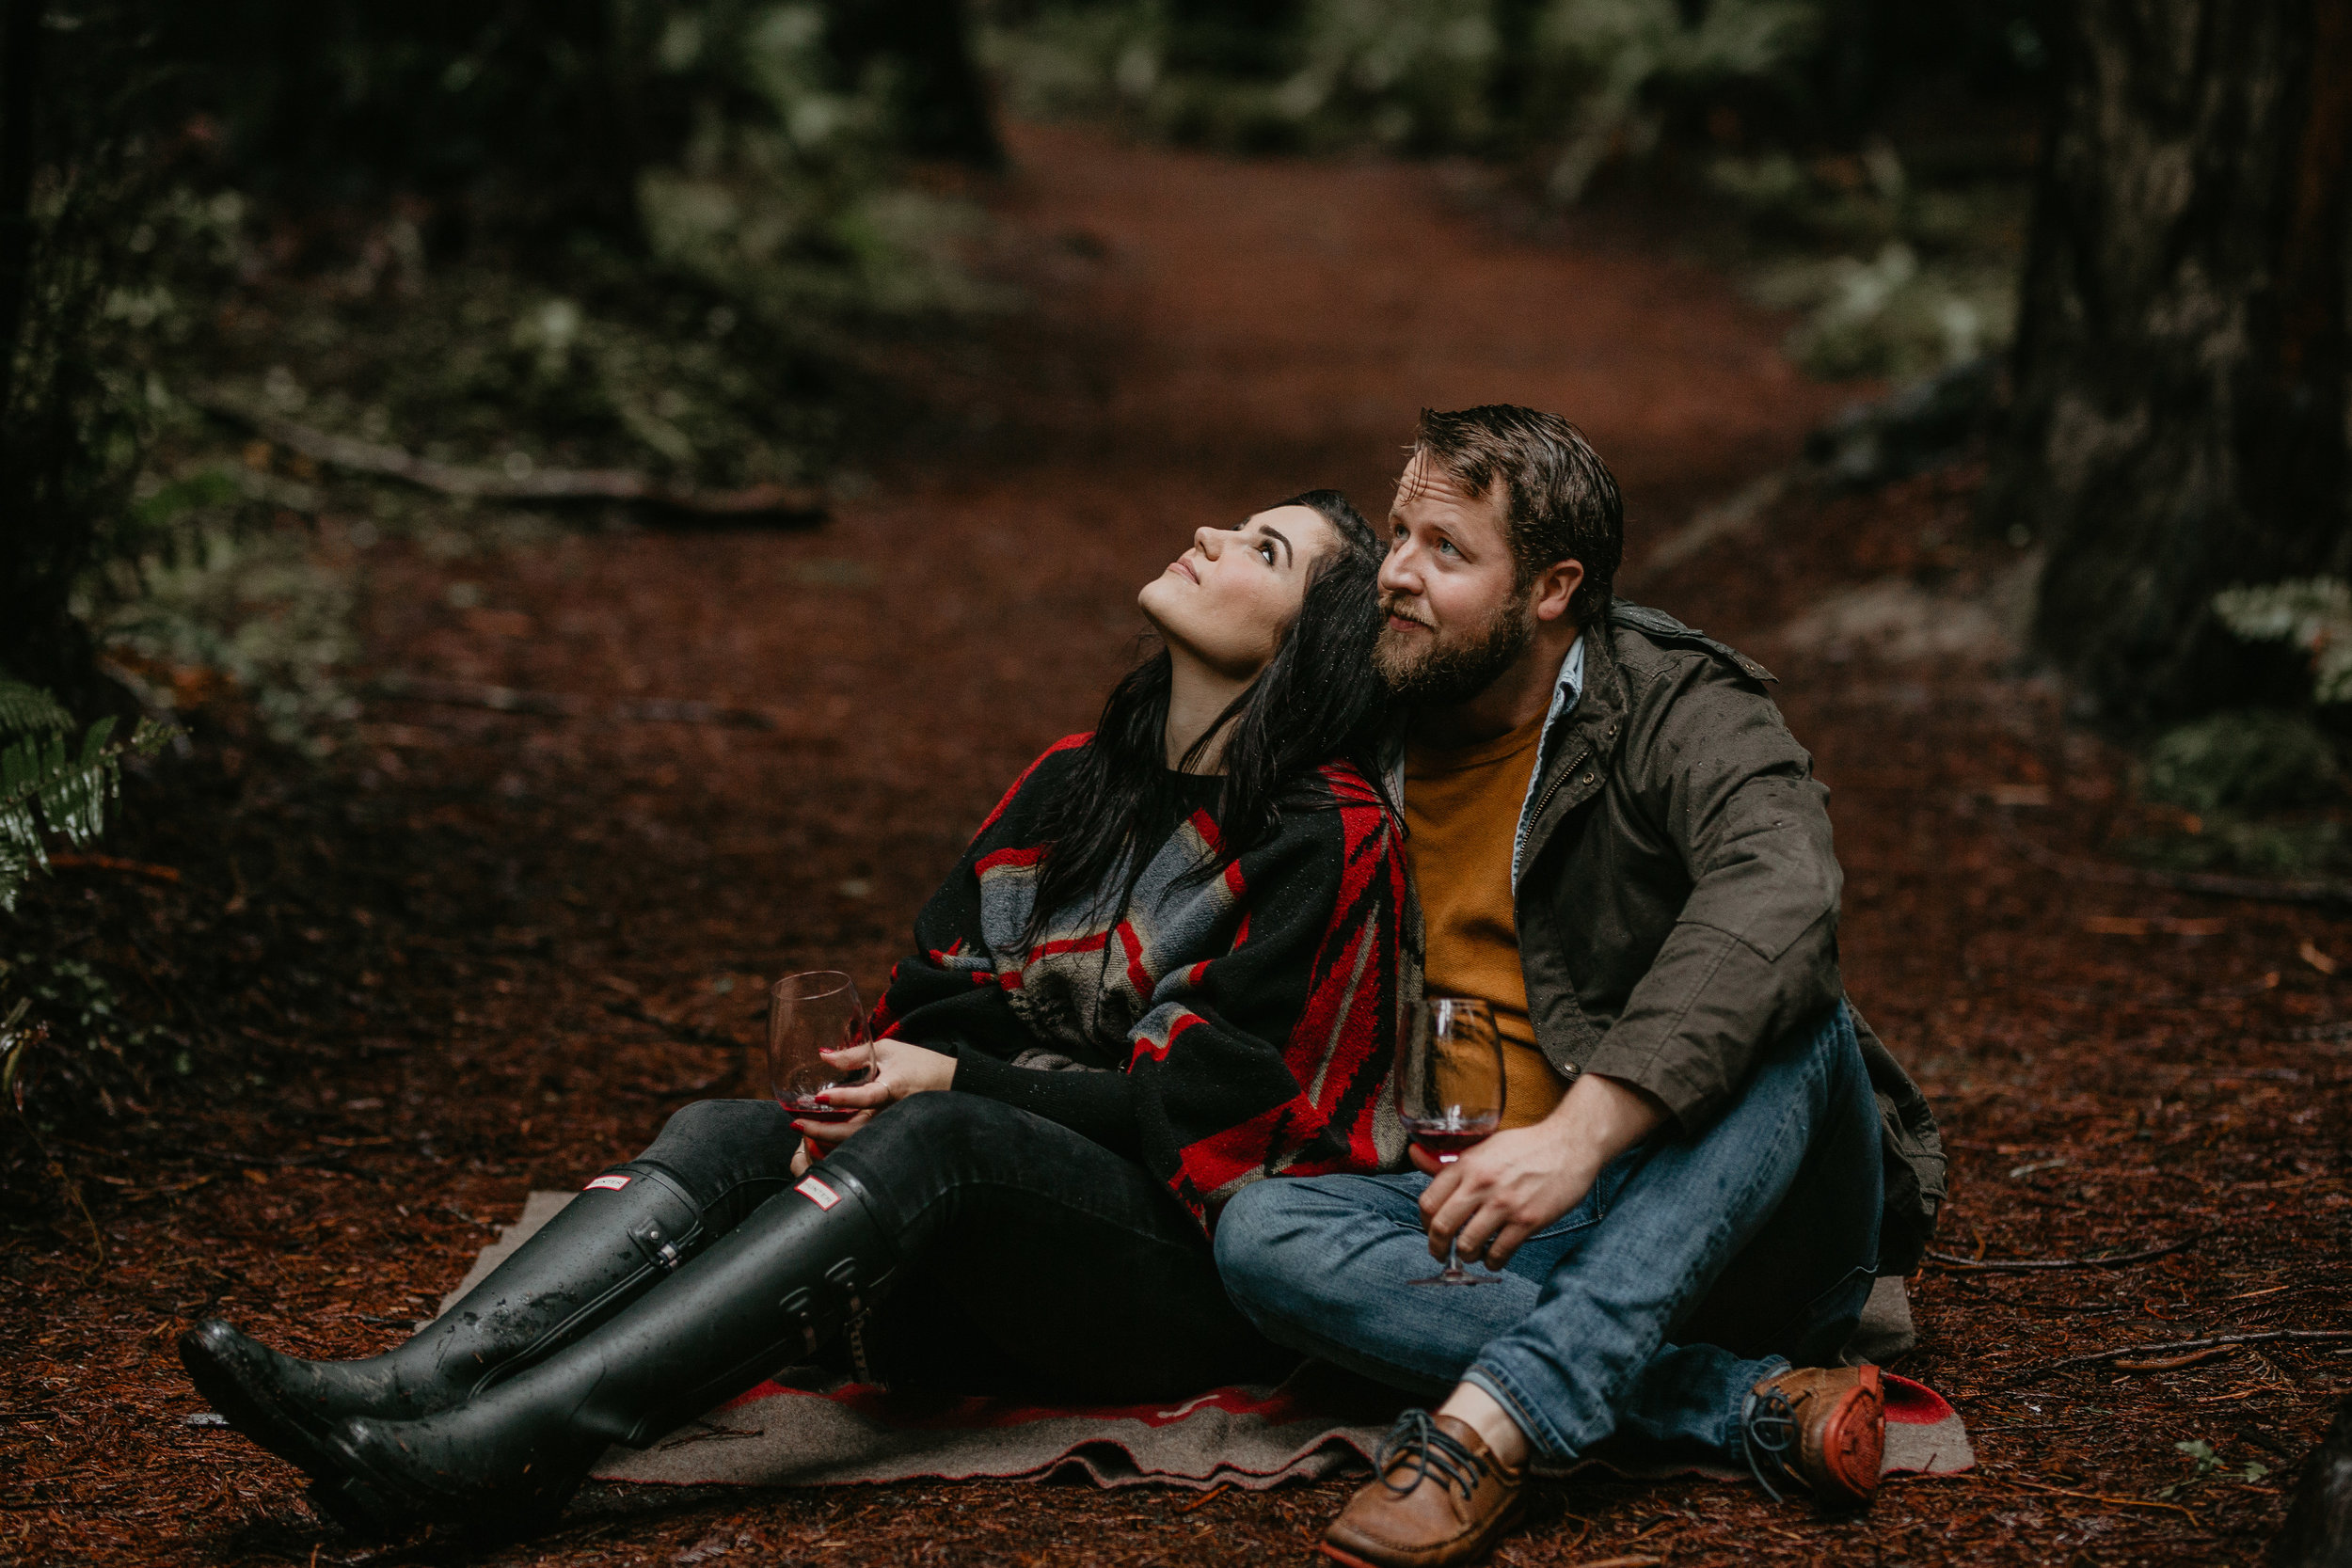 nicole-daacke-photography-redwoods-national-park-forest-rainy-foggy-adventure-engagement-session-humboldt-county-old-growth-redwood-tree-elopement-intimate-wedding-photographer-22.jpg